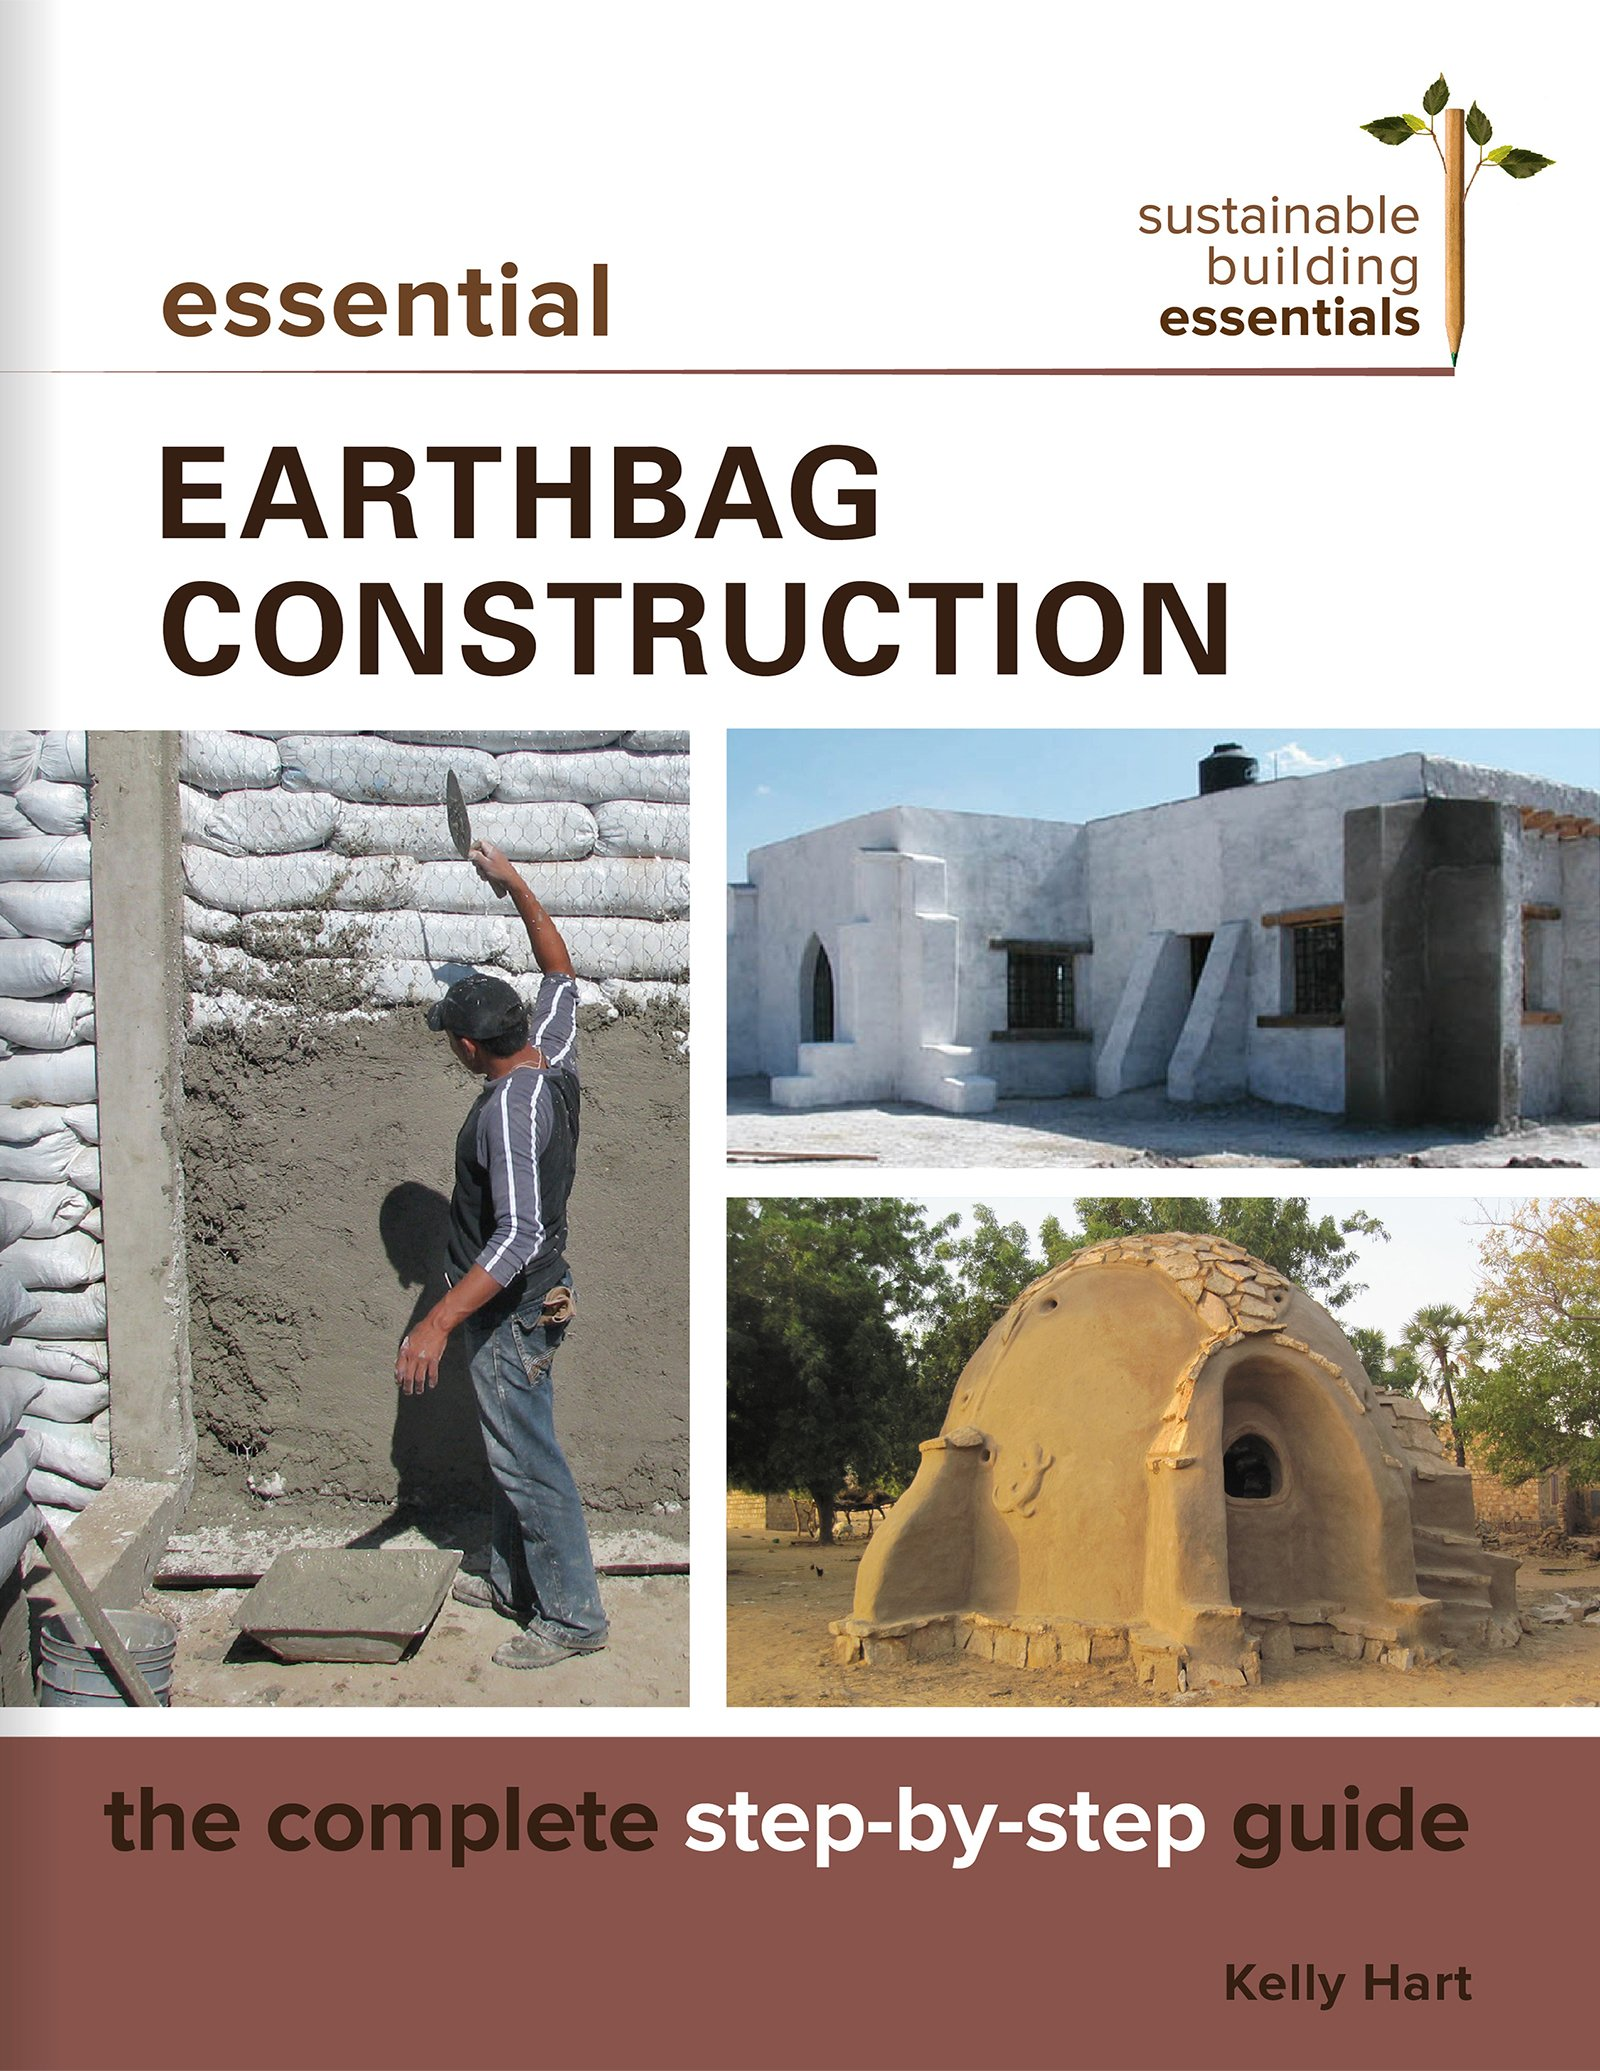 Essential earthbag construction the complete step by step guide essential earthbag construction the complete step by step guide sustainable building essentials series kelly hart 9780865718647 amazon books fandeluxe Gallery